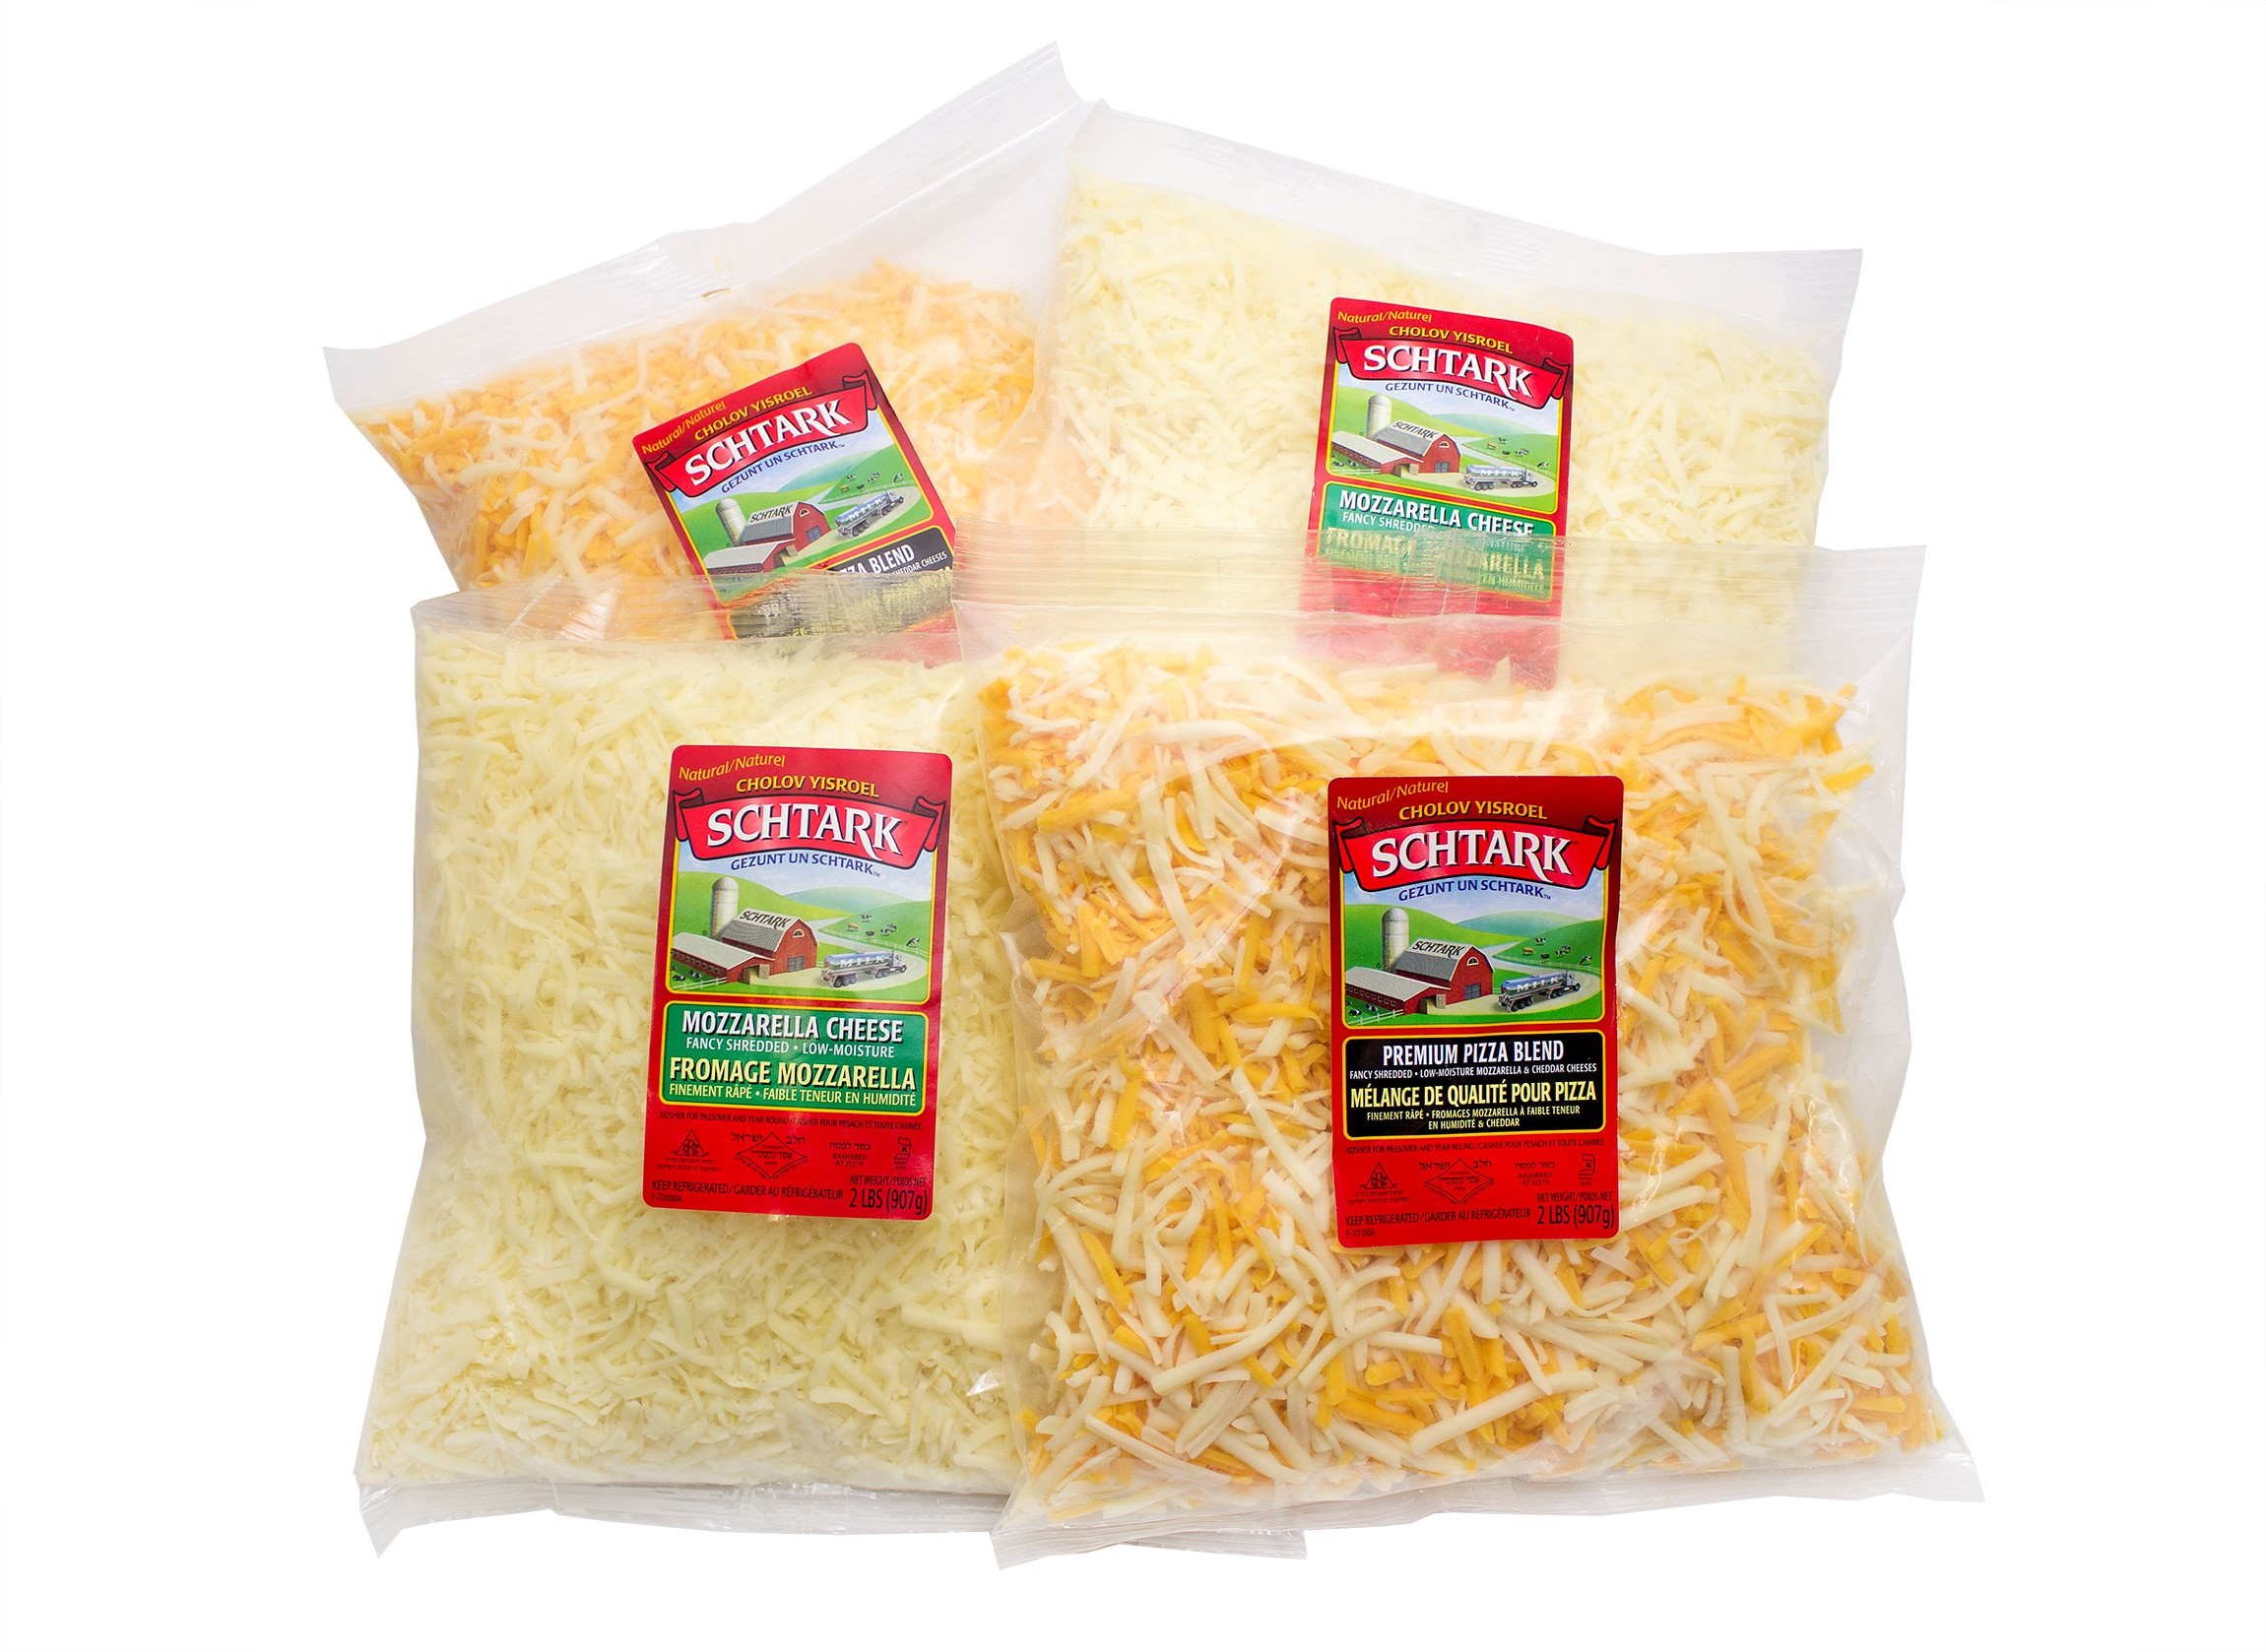 Schtark Super Kosher Mozzarella and Pizza Shred                  Cheese Combo (2 lb. each, 4 pack)